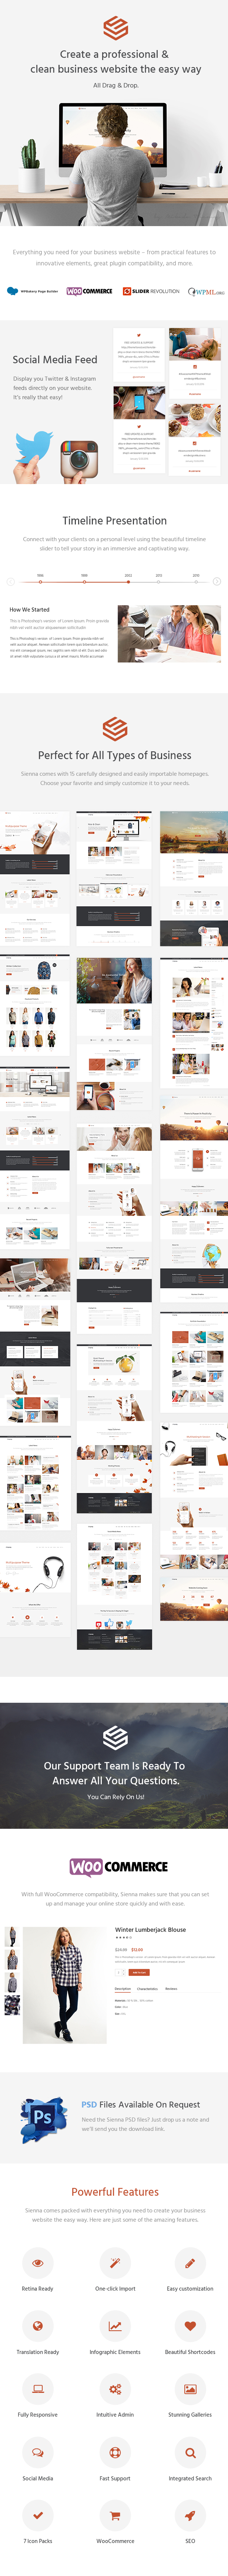 Sienna - Professional Business Theme - 1